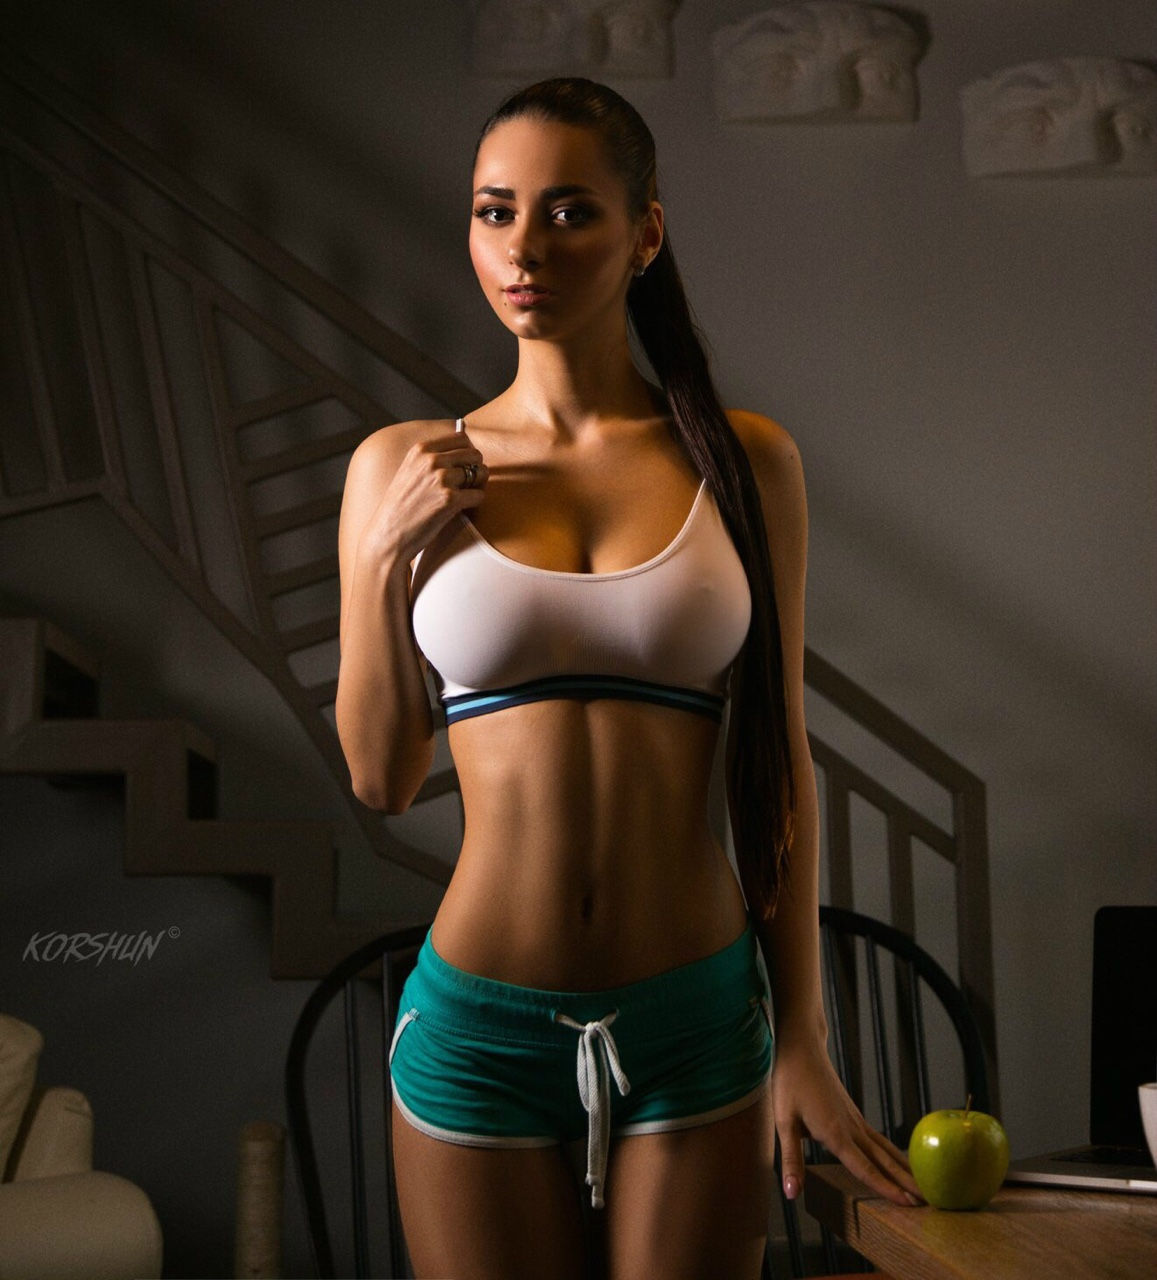 Hot sporty look..